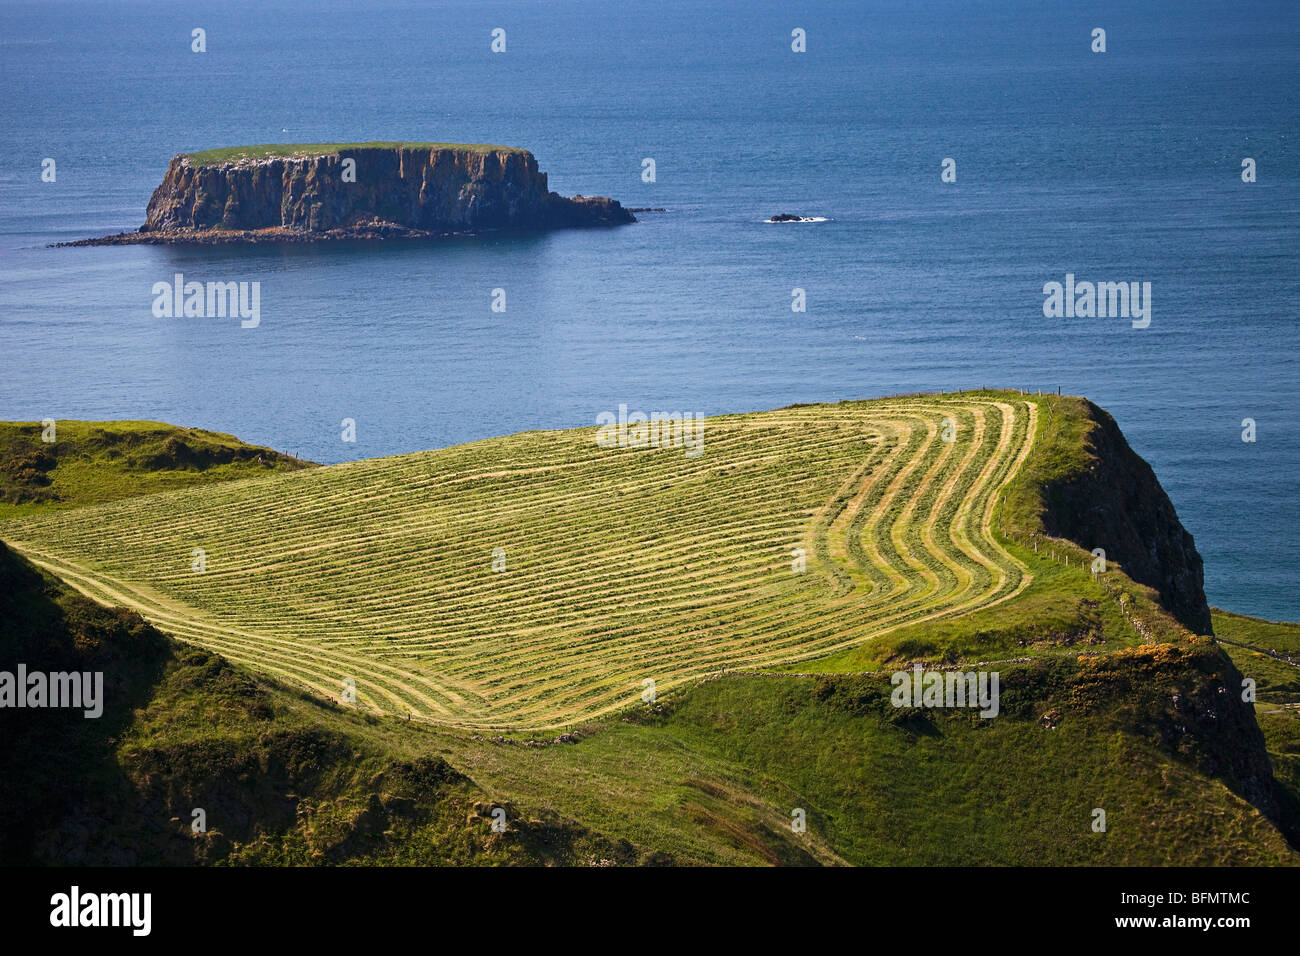 United Kingdom, Northern Ireland, Antrim, Ballycastle, Ballintoy, view of ploughed field. - Stock Image